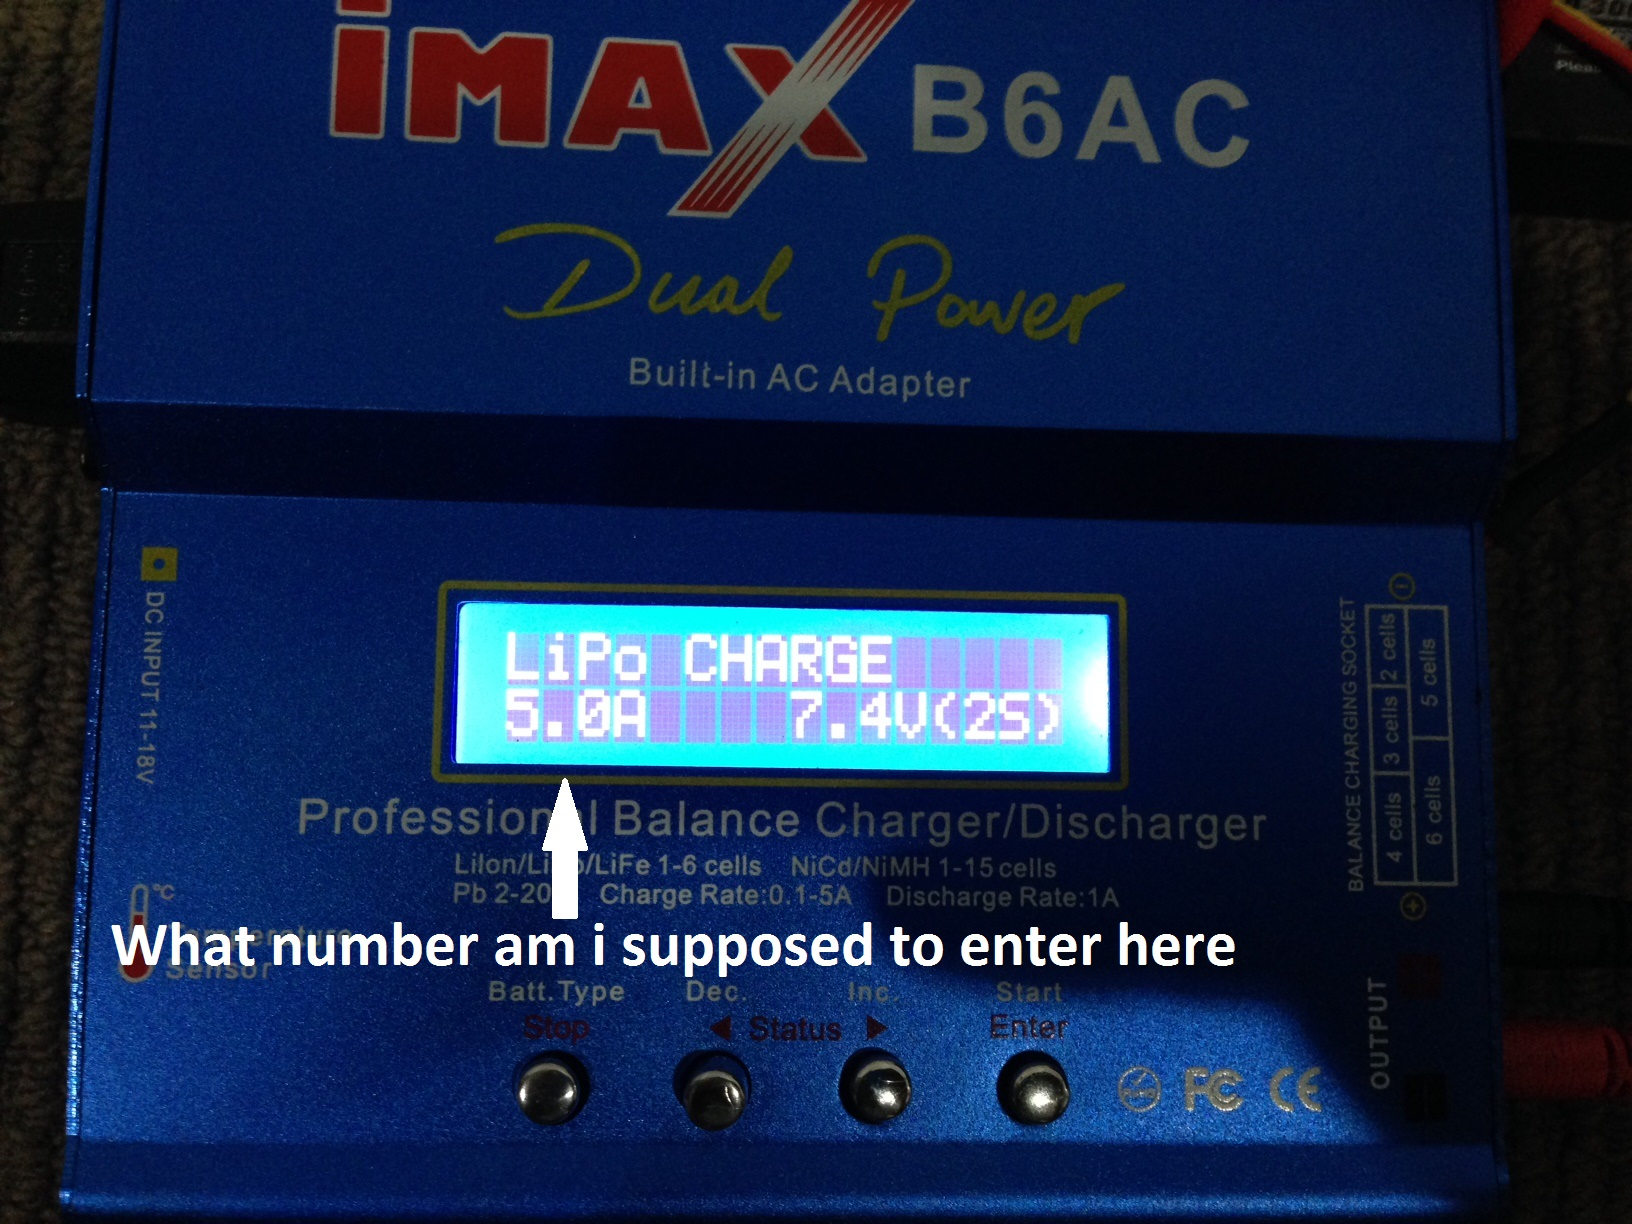 How To Charge My New Lipo Battery Imax B6ac Charger Rcu Forums Balancer Seven Segments Thank You So Much For Your Help Who Ever Is Going